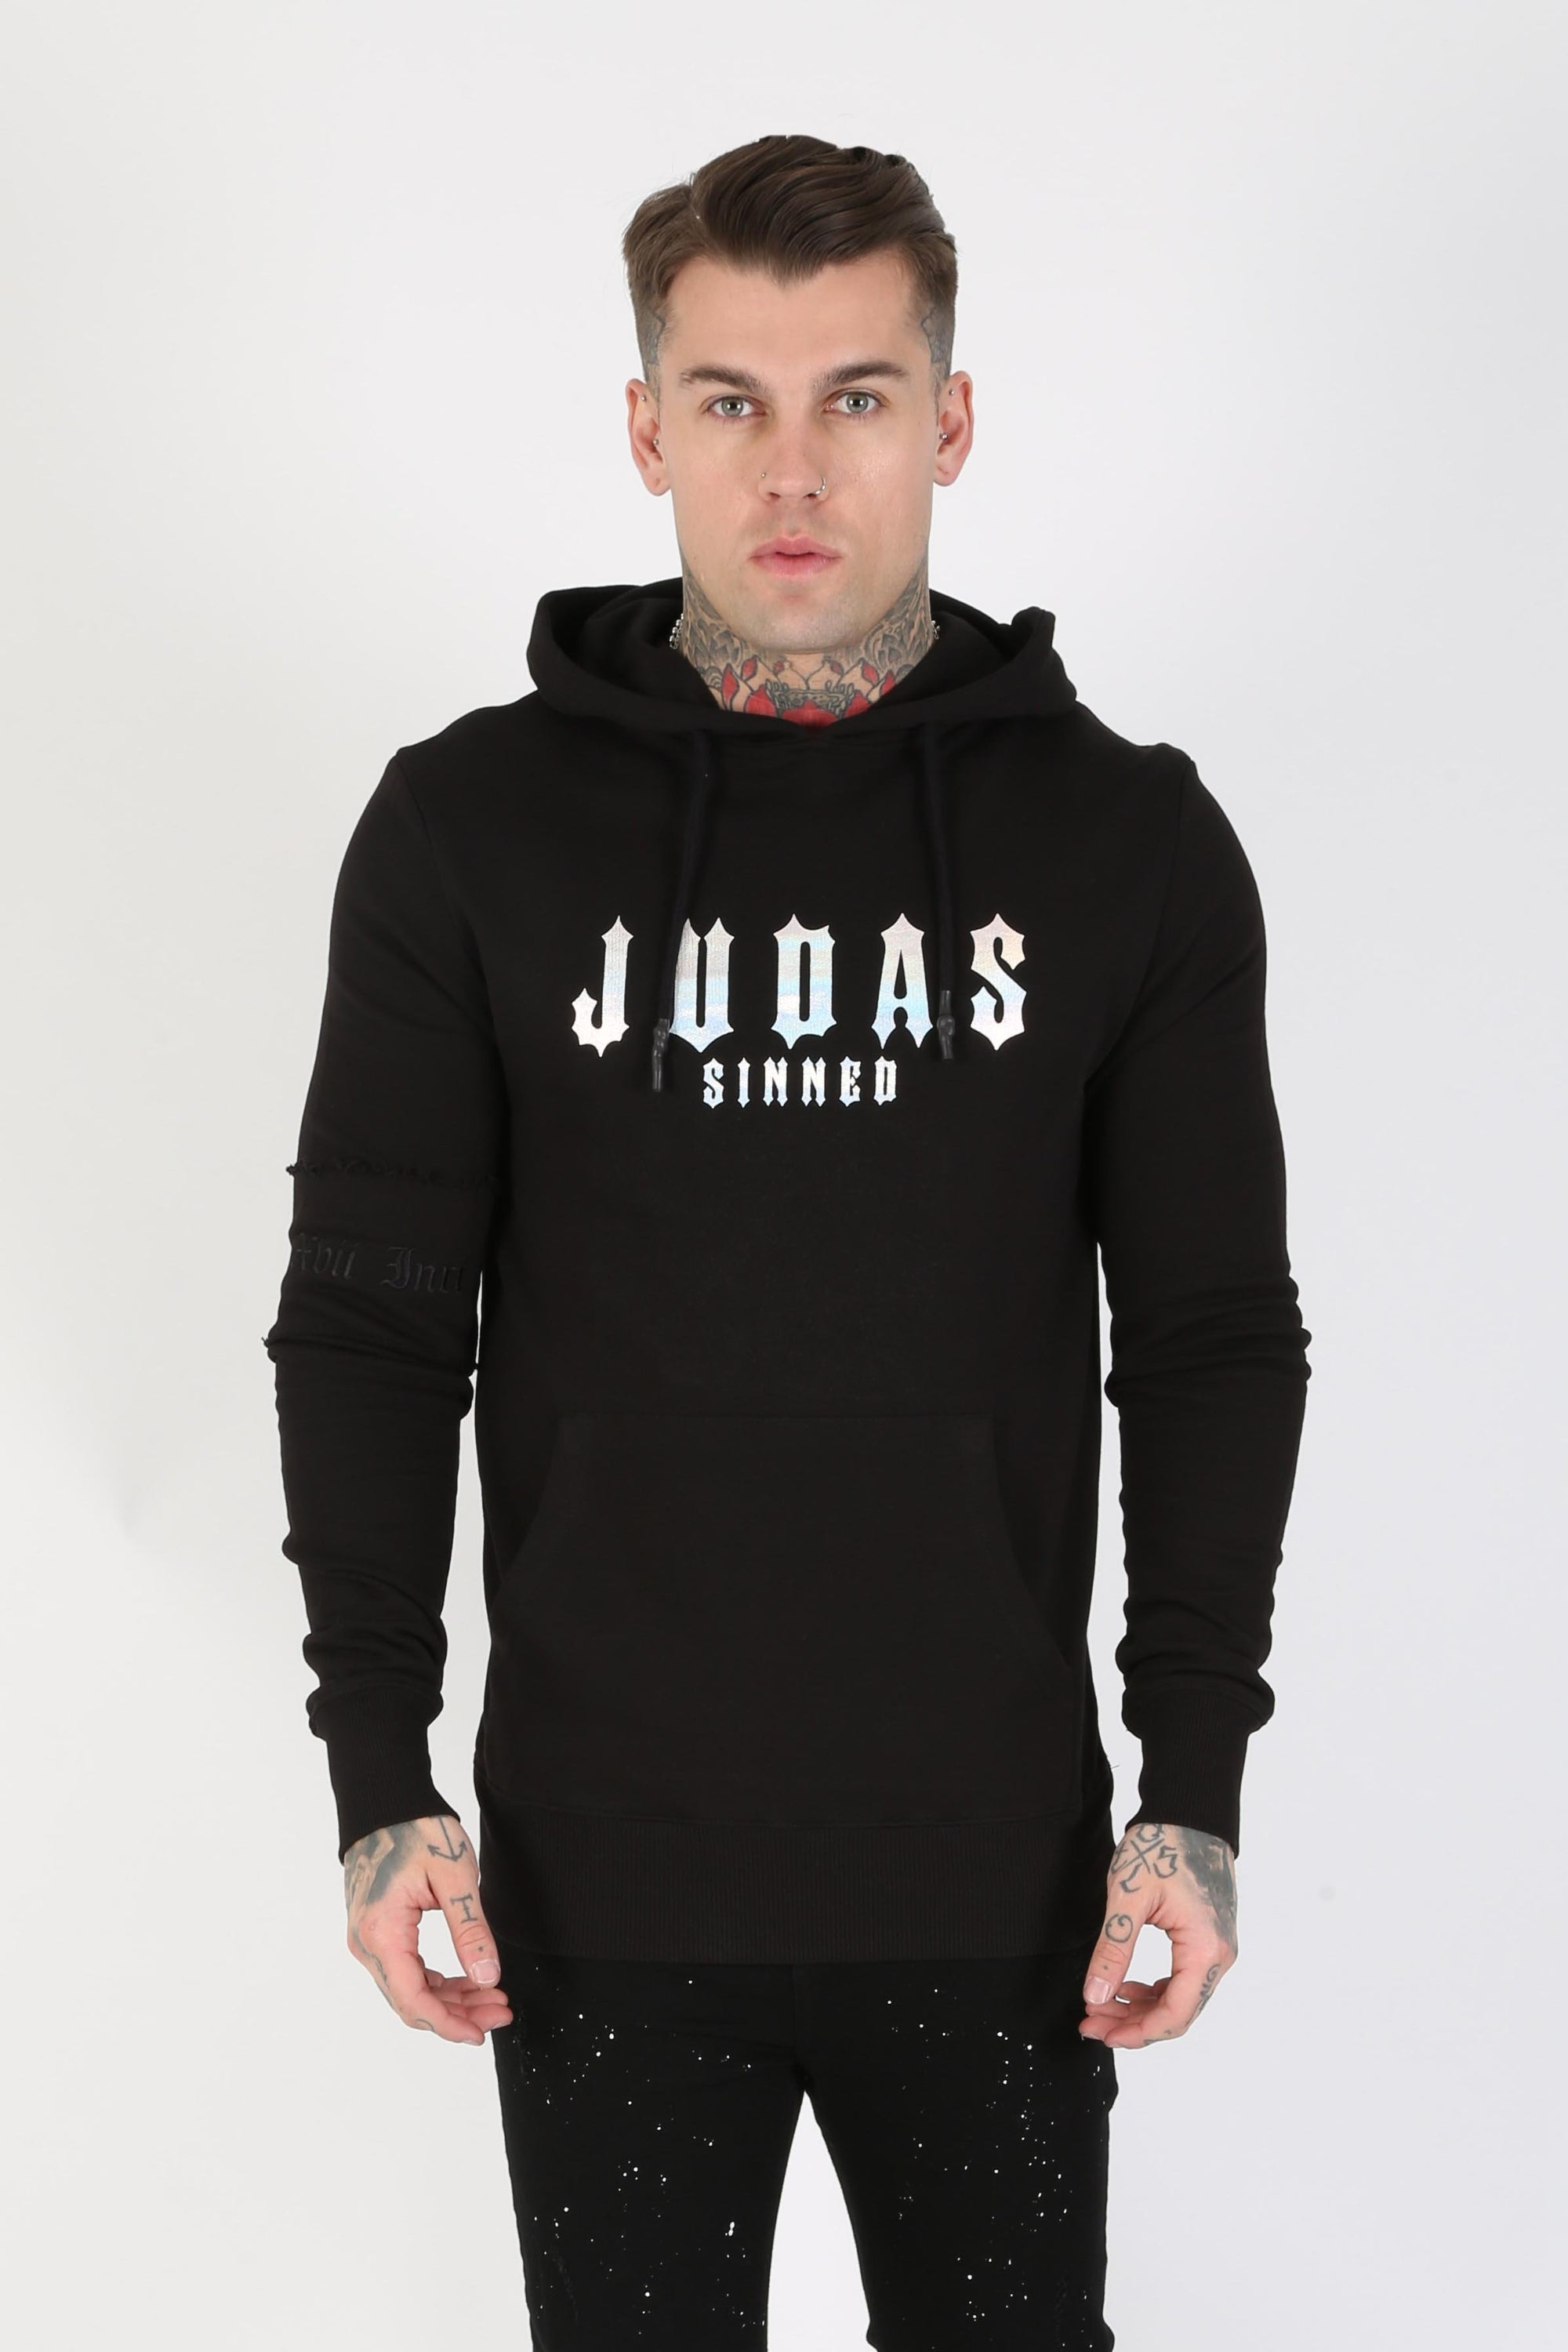 Judas Sinned Stealth Ombre Logo Men's Hoodie - Black - Judas Sinned Clothing